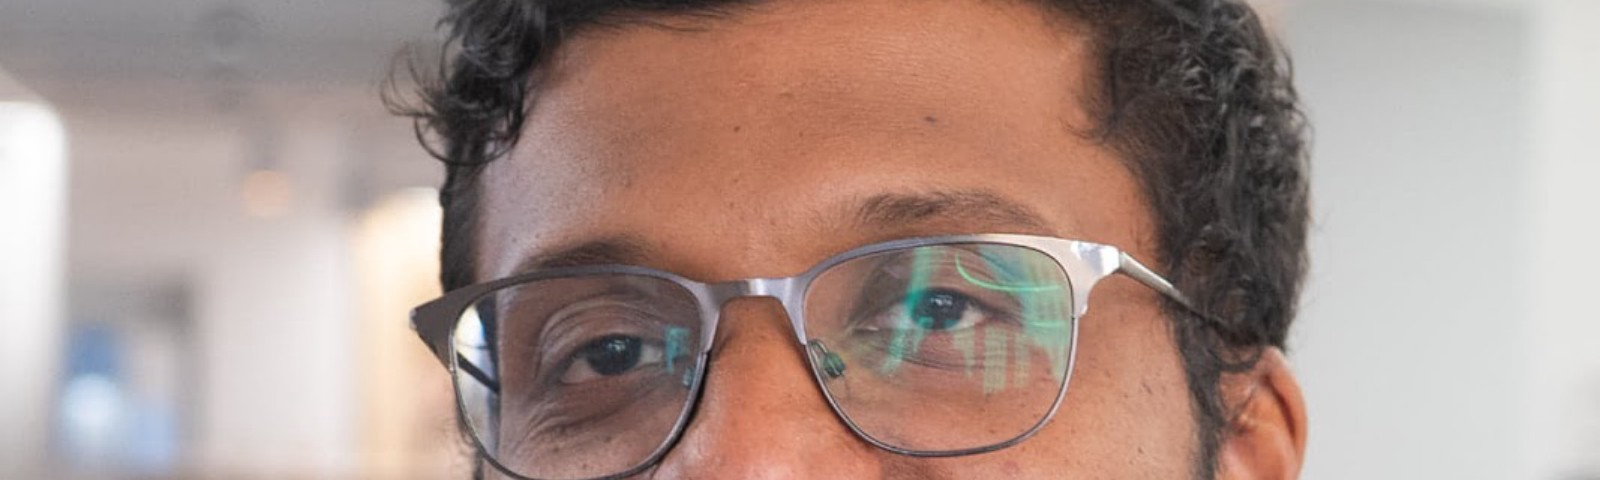 Person wearing a gray shirt and steel-framed glasses smiling at the camera. Out of focus background that looks like an office